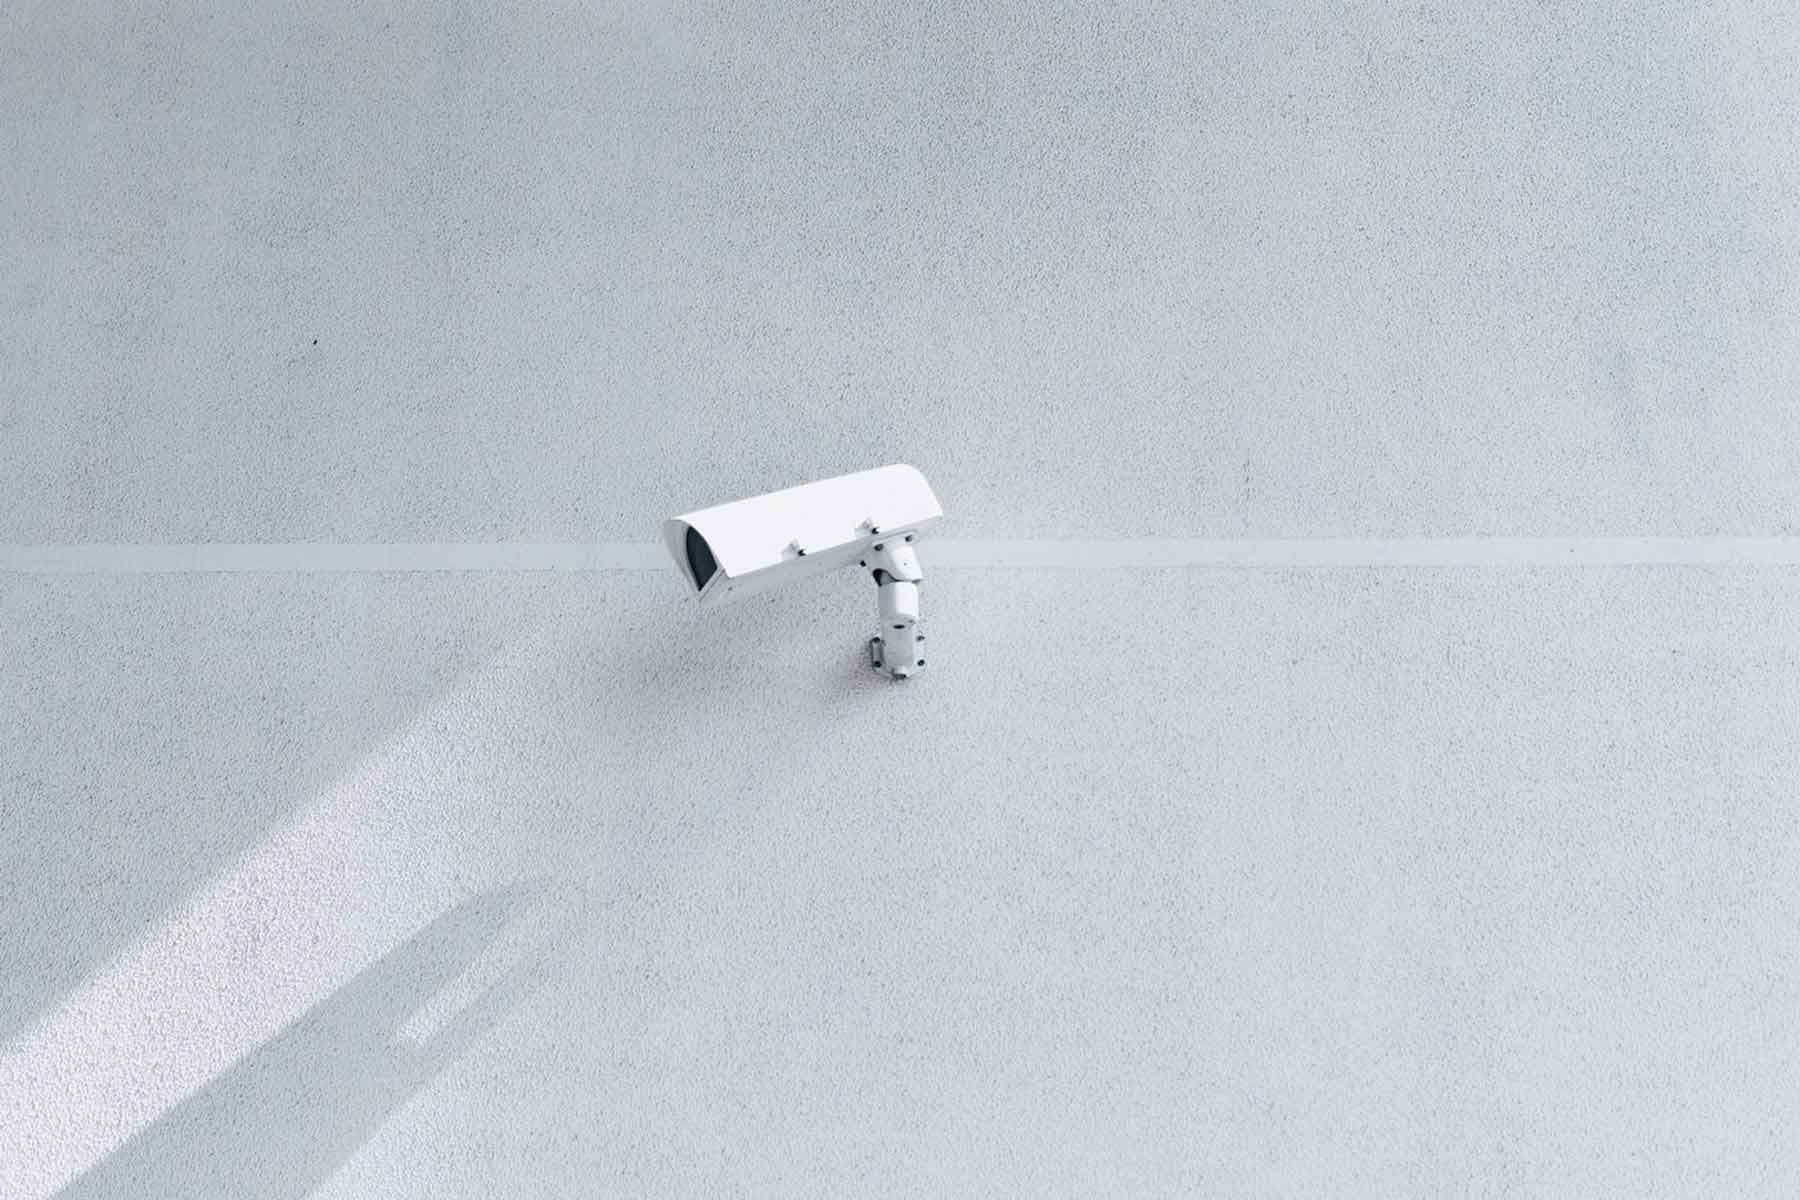 security-camera-white-wall-shadows